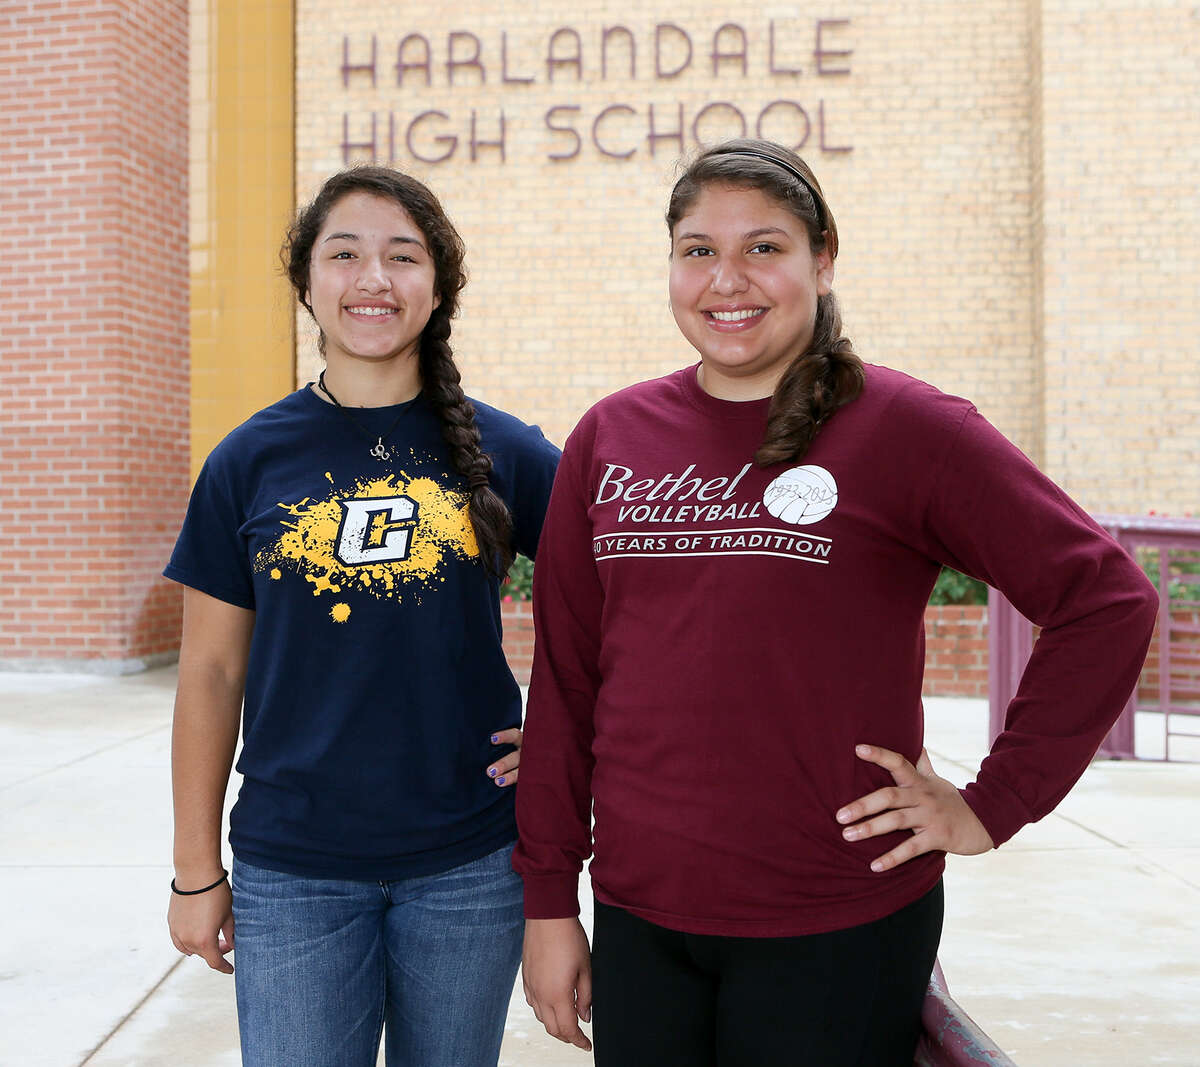 Harlandale graduates Katie Neira (right) and Sierrra Sandoval in front of the school on Friday, July 18, 2014. Neira and Sandoval are headed to Kansas this fall to play volleyball; Neira at Bethel College and Sandoval at Central Christian College. Photo by Marvin Pfeiffer / EN Communities